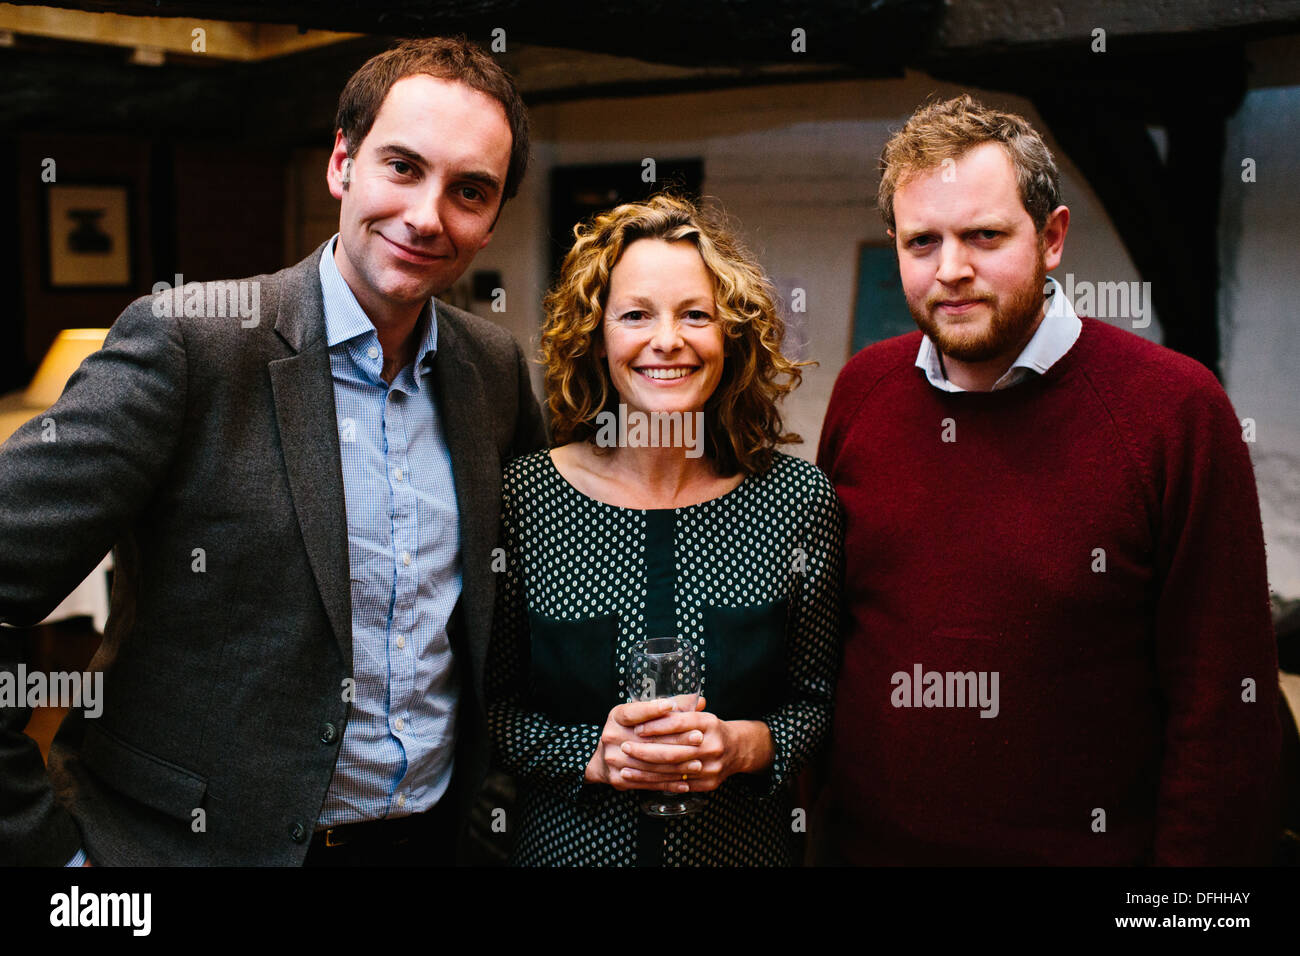 Dougie Anderson & Kate umile & Miles Jupp Immagini Stock